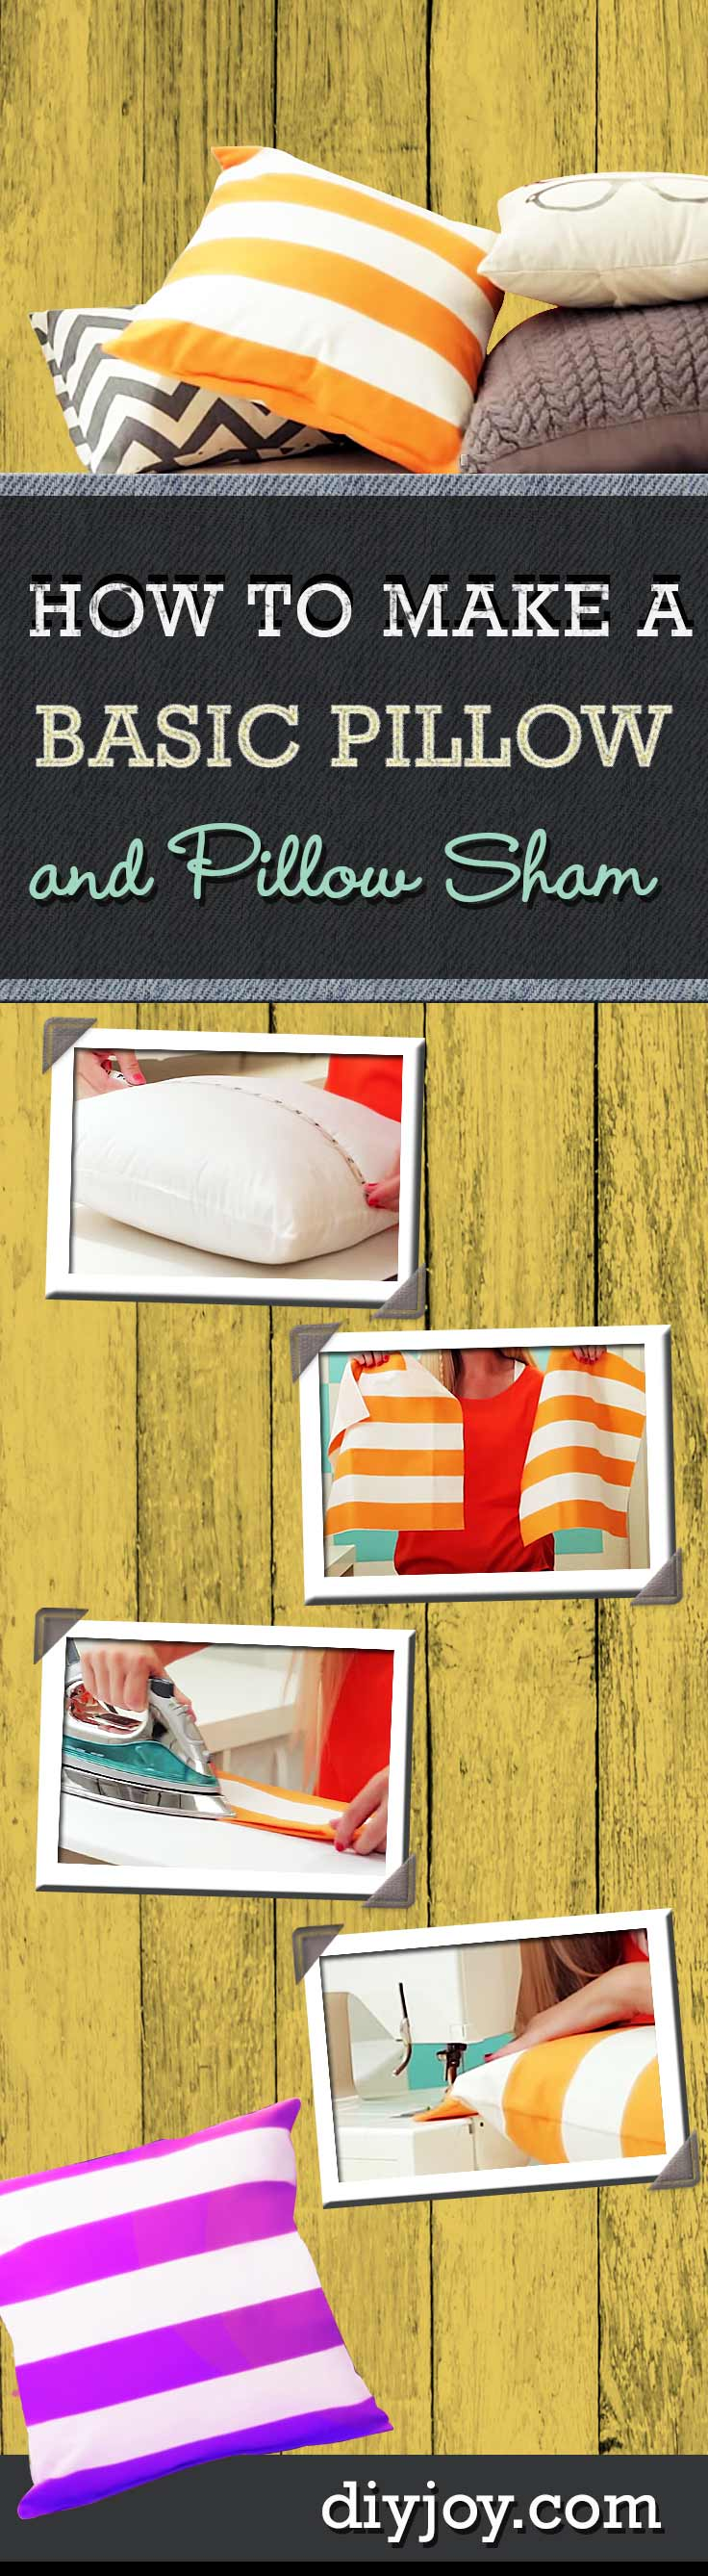 Sewing Projects for The Home - How to Make A Pillow Sham - Sewing Tutorials for Beginners and Easy DIY Projects- Free DIY Sewing Patterns, Easy Ideas and Tutorials for Curtains, Upholstery, Napkins, Pillows and Decor #homedecor #diy #sewing